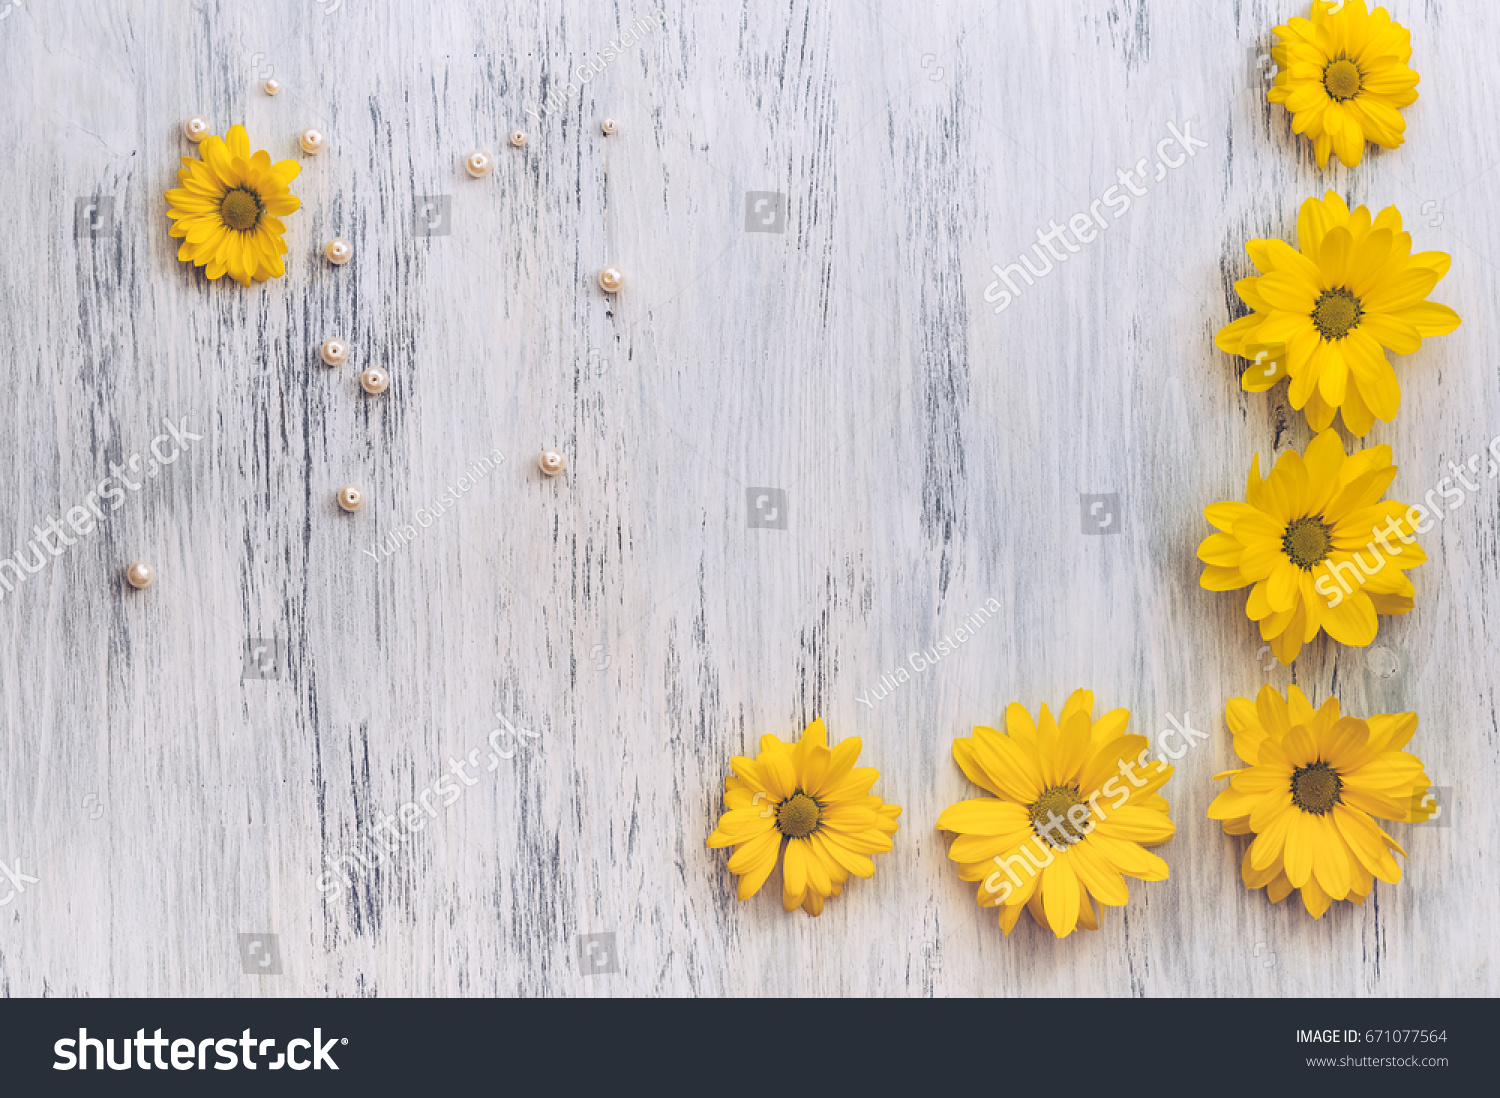 Wooden Surface Painted White Yellow Flowers Stock Photo Edit Now